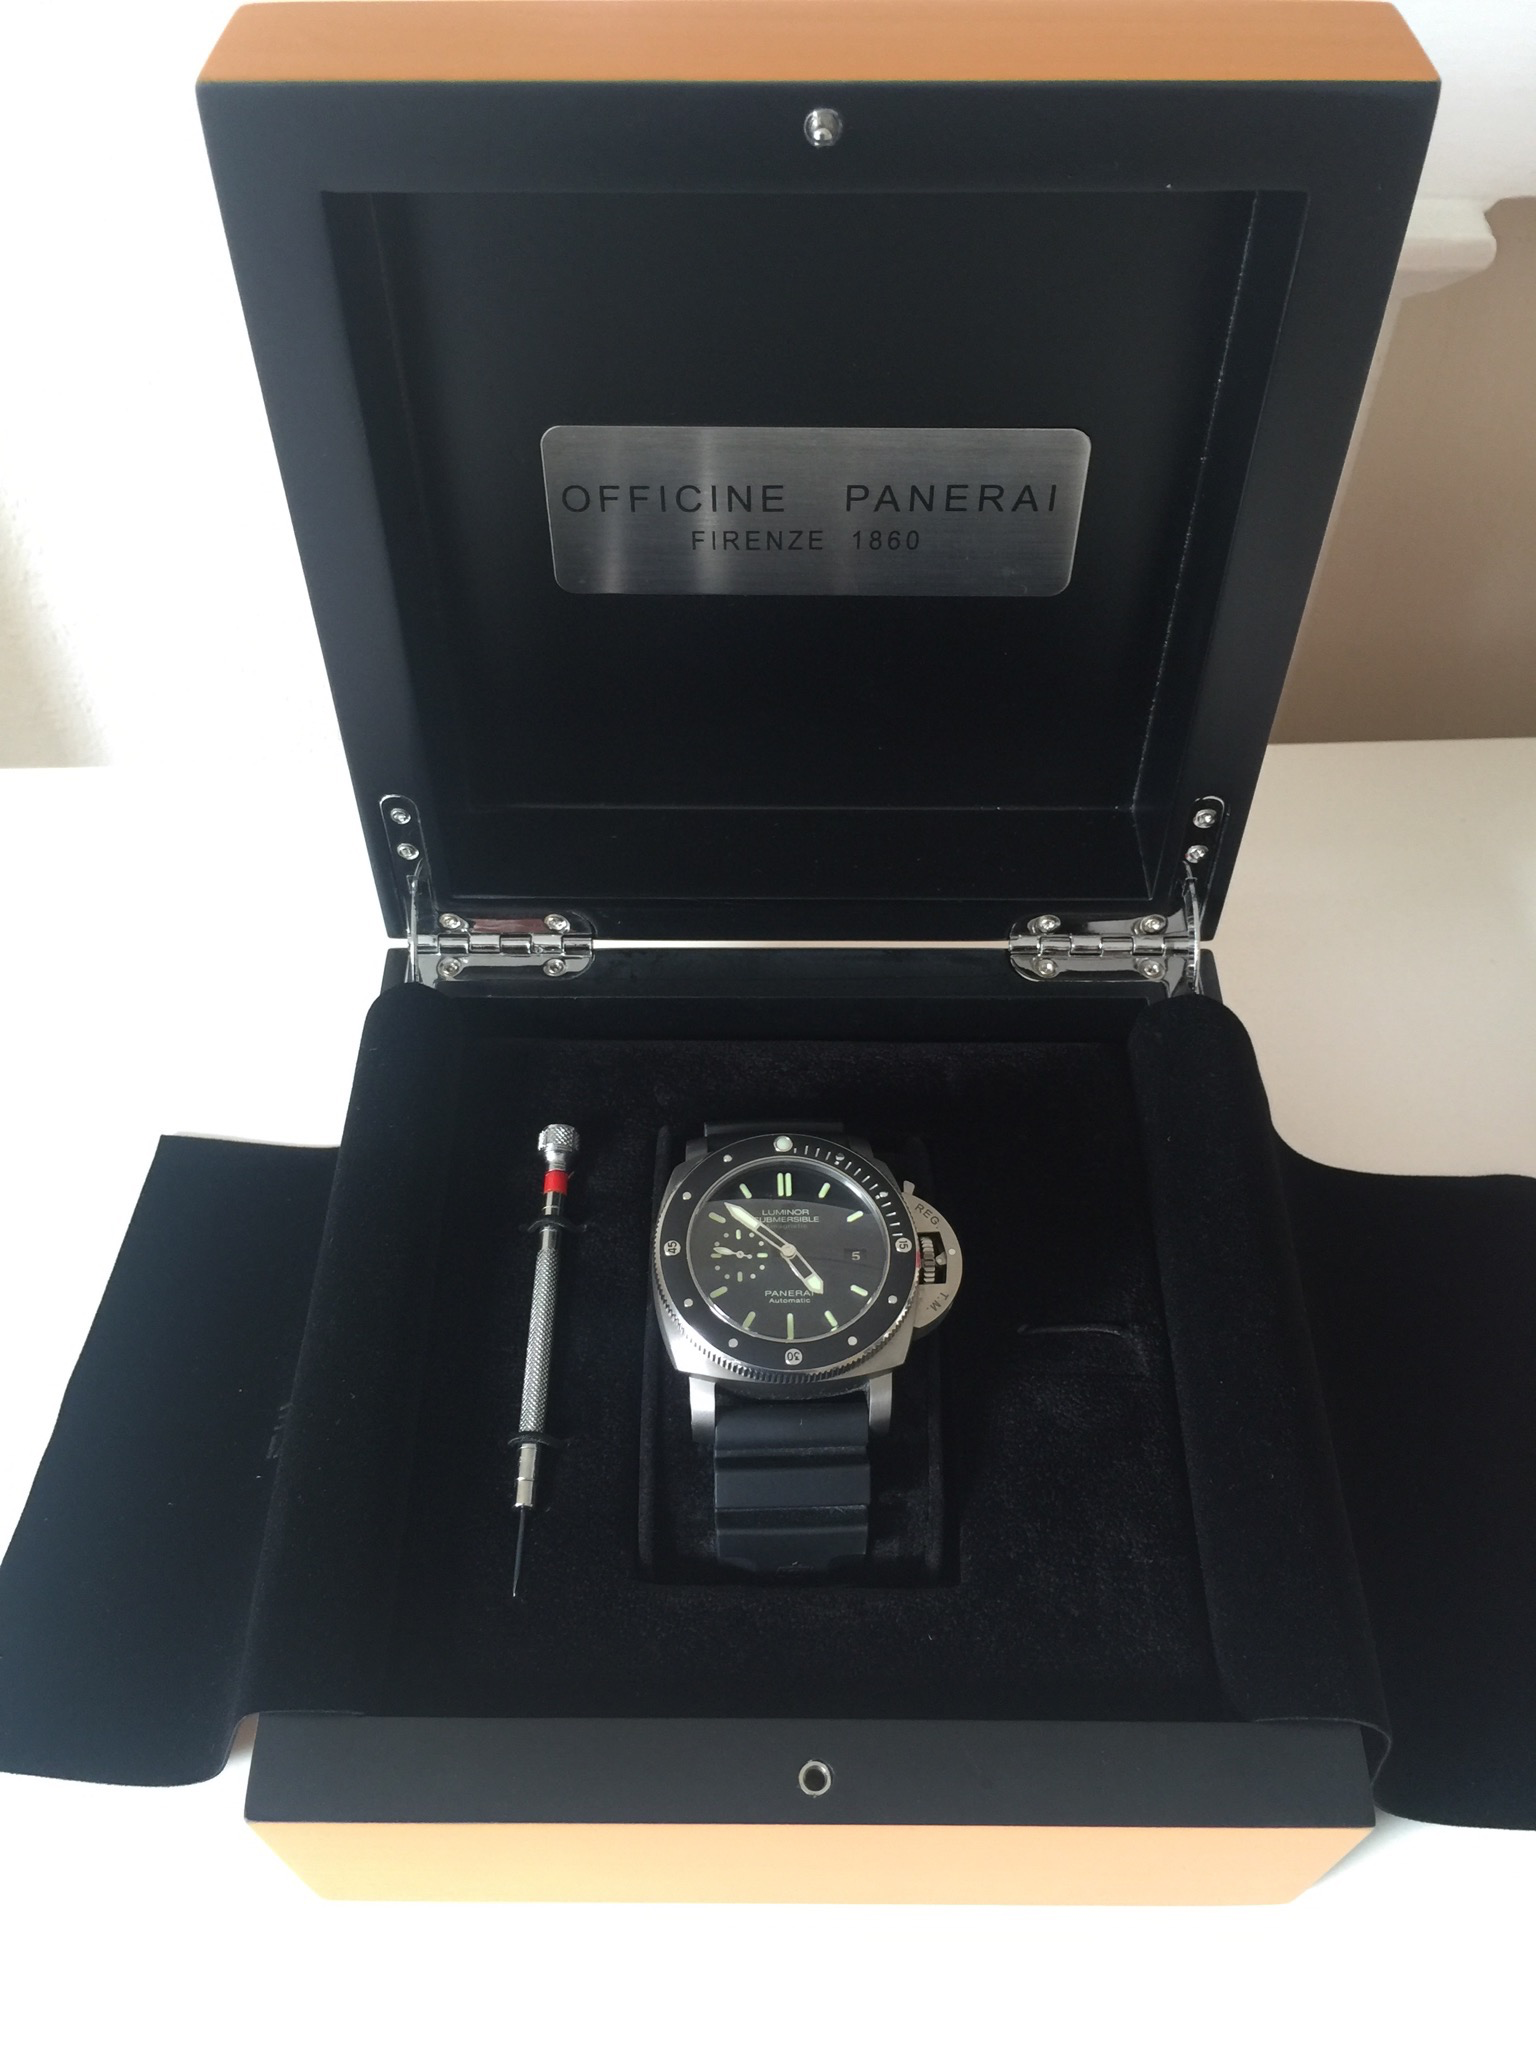 PAM 389 in Box